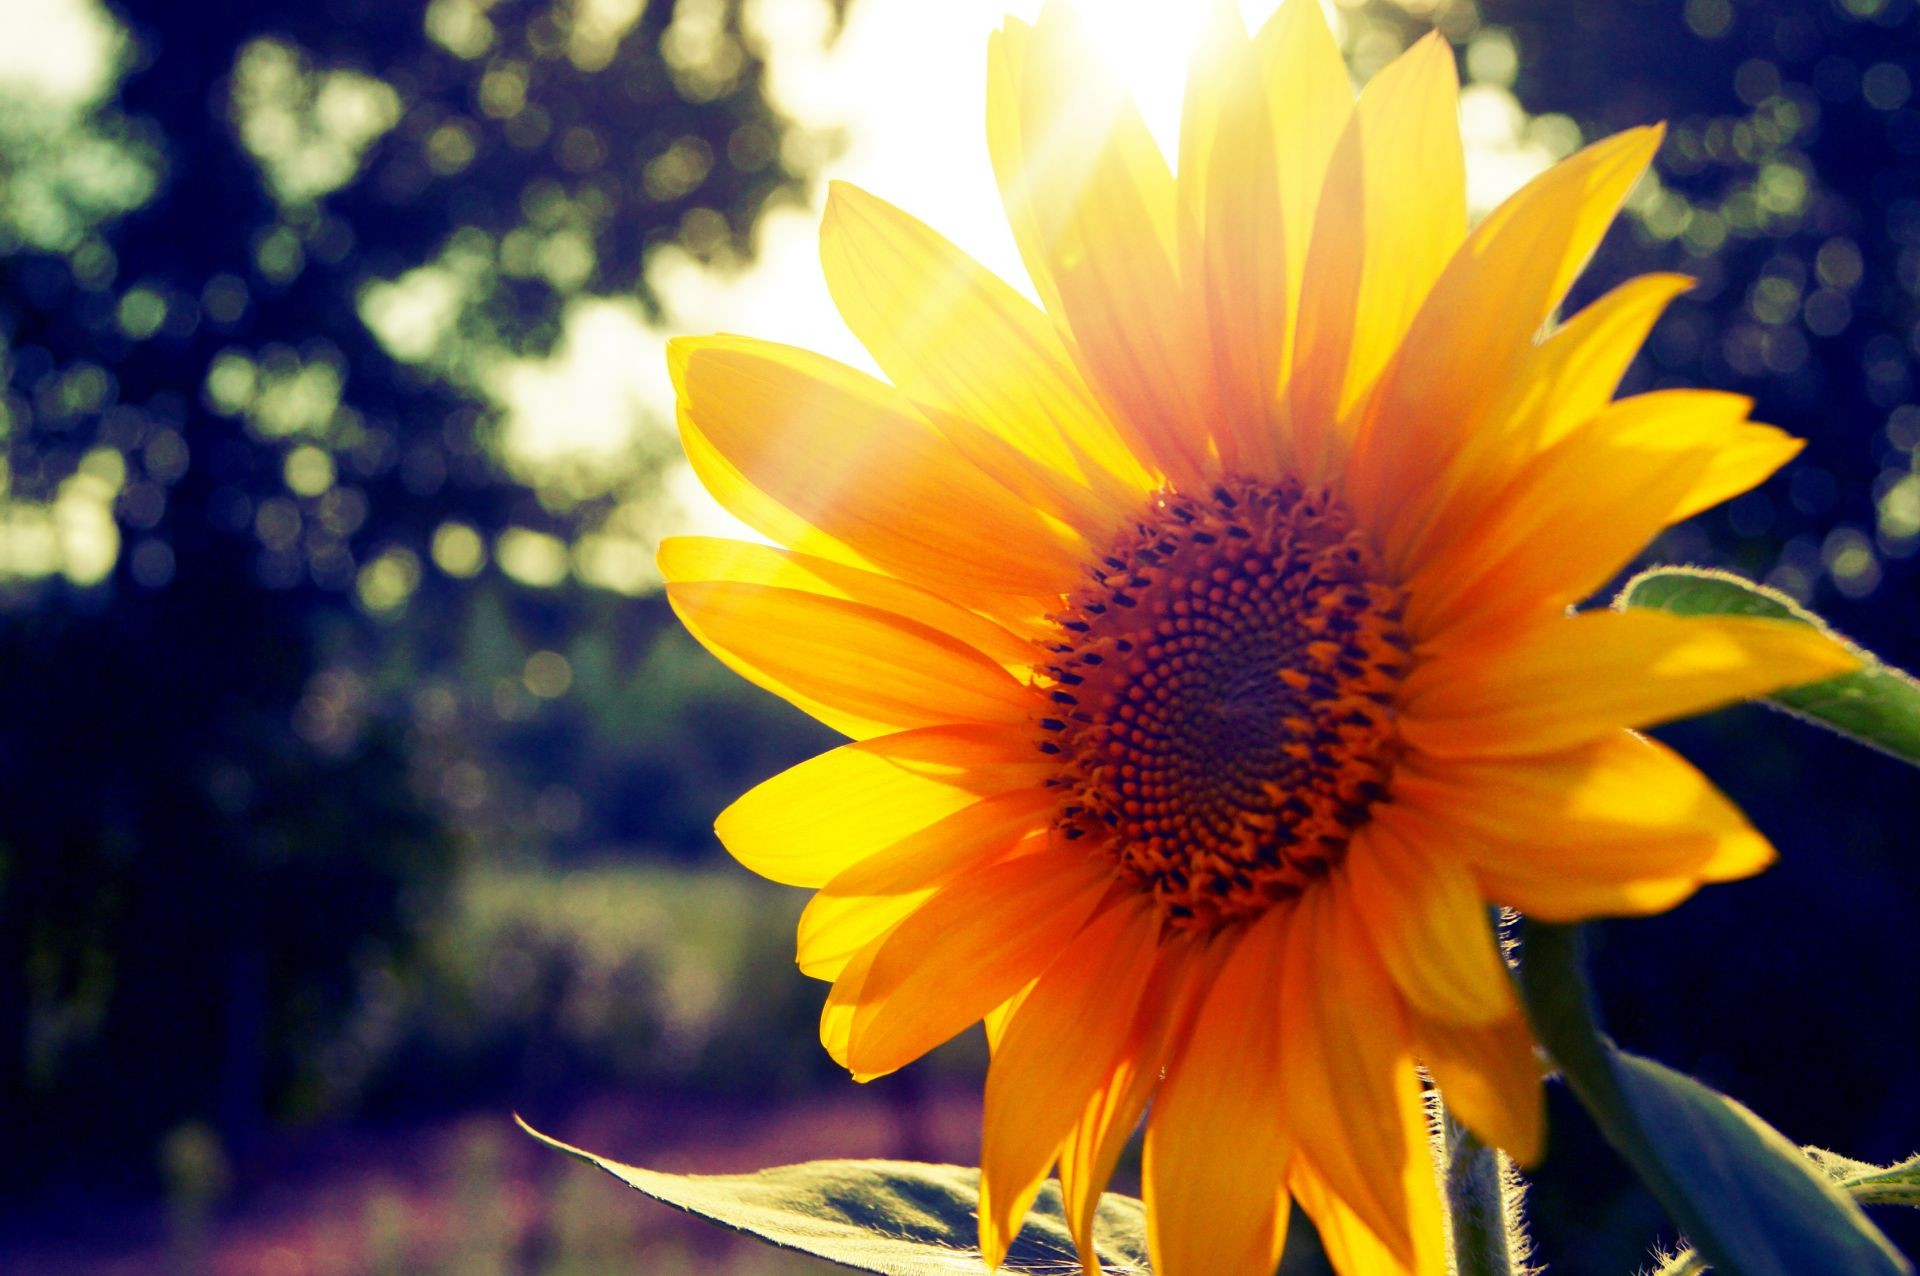 sunflowers nature flower flora summer leaf garden bright color sun fair weather growth